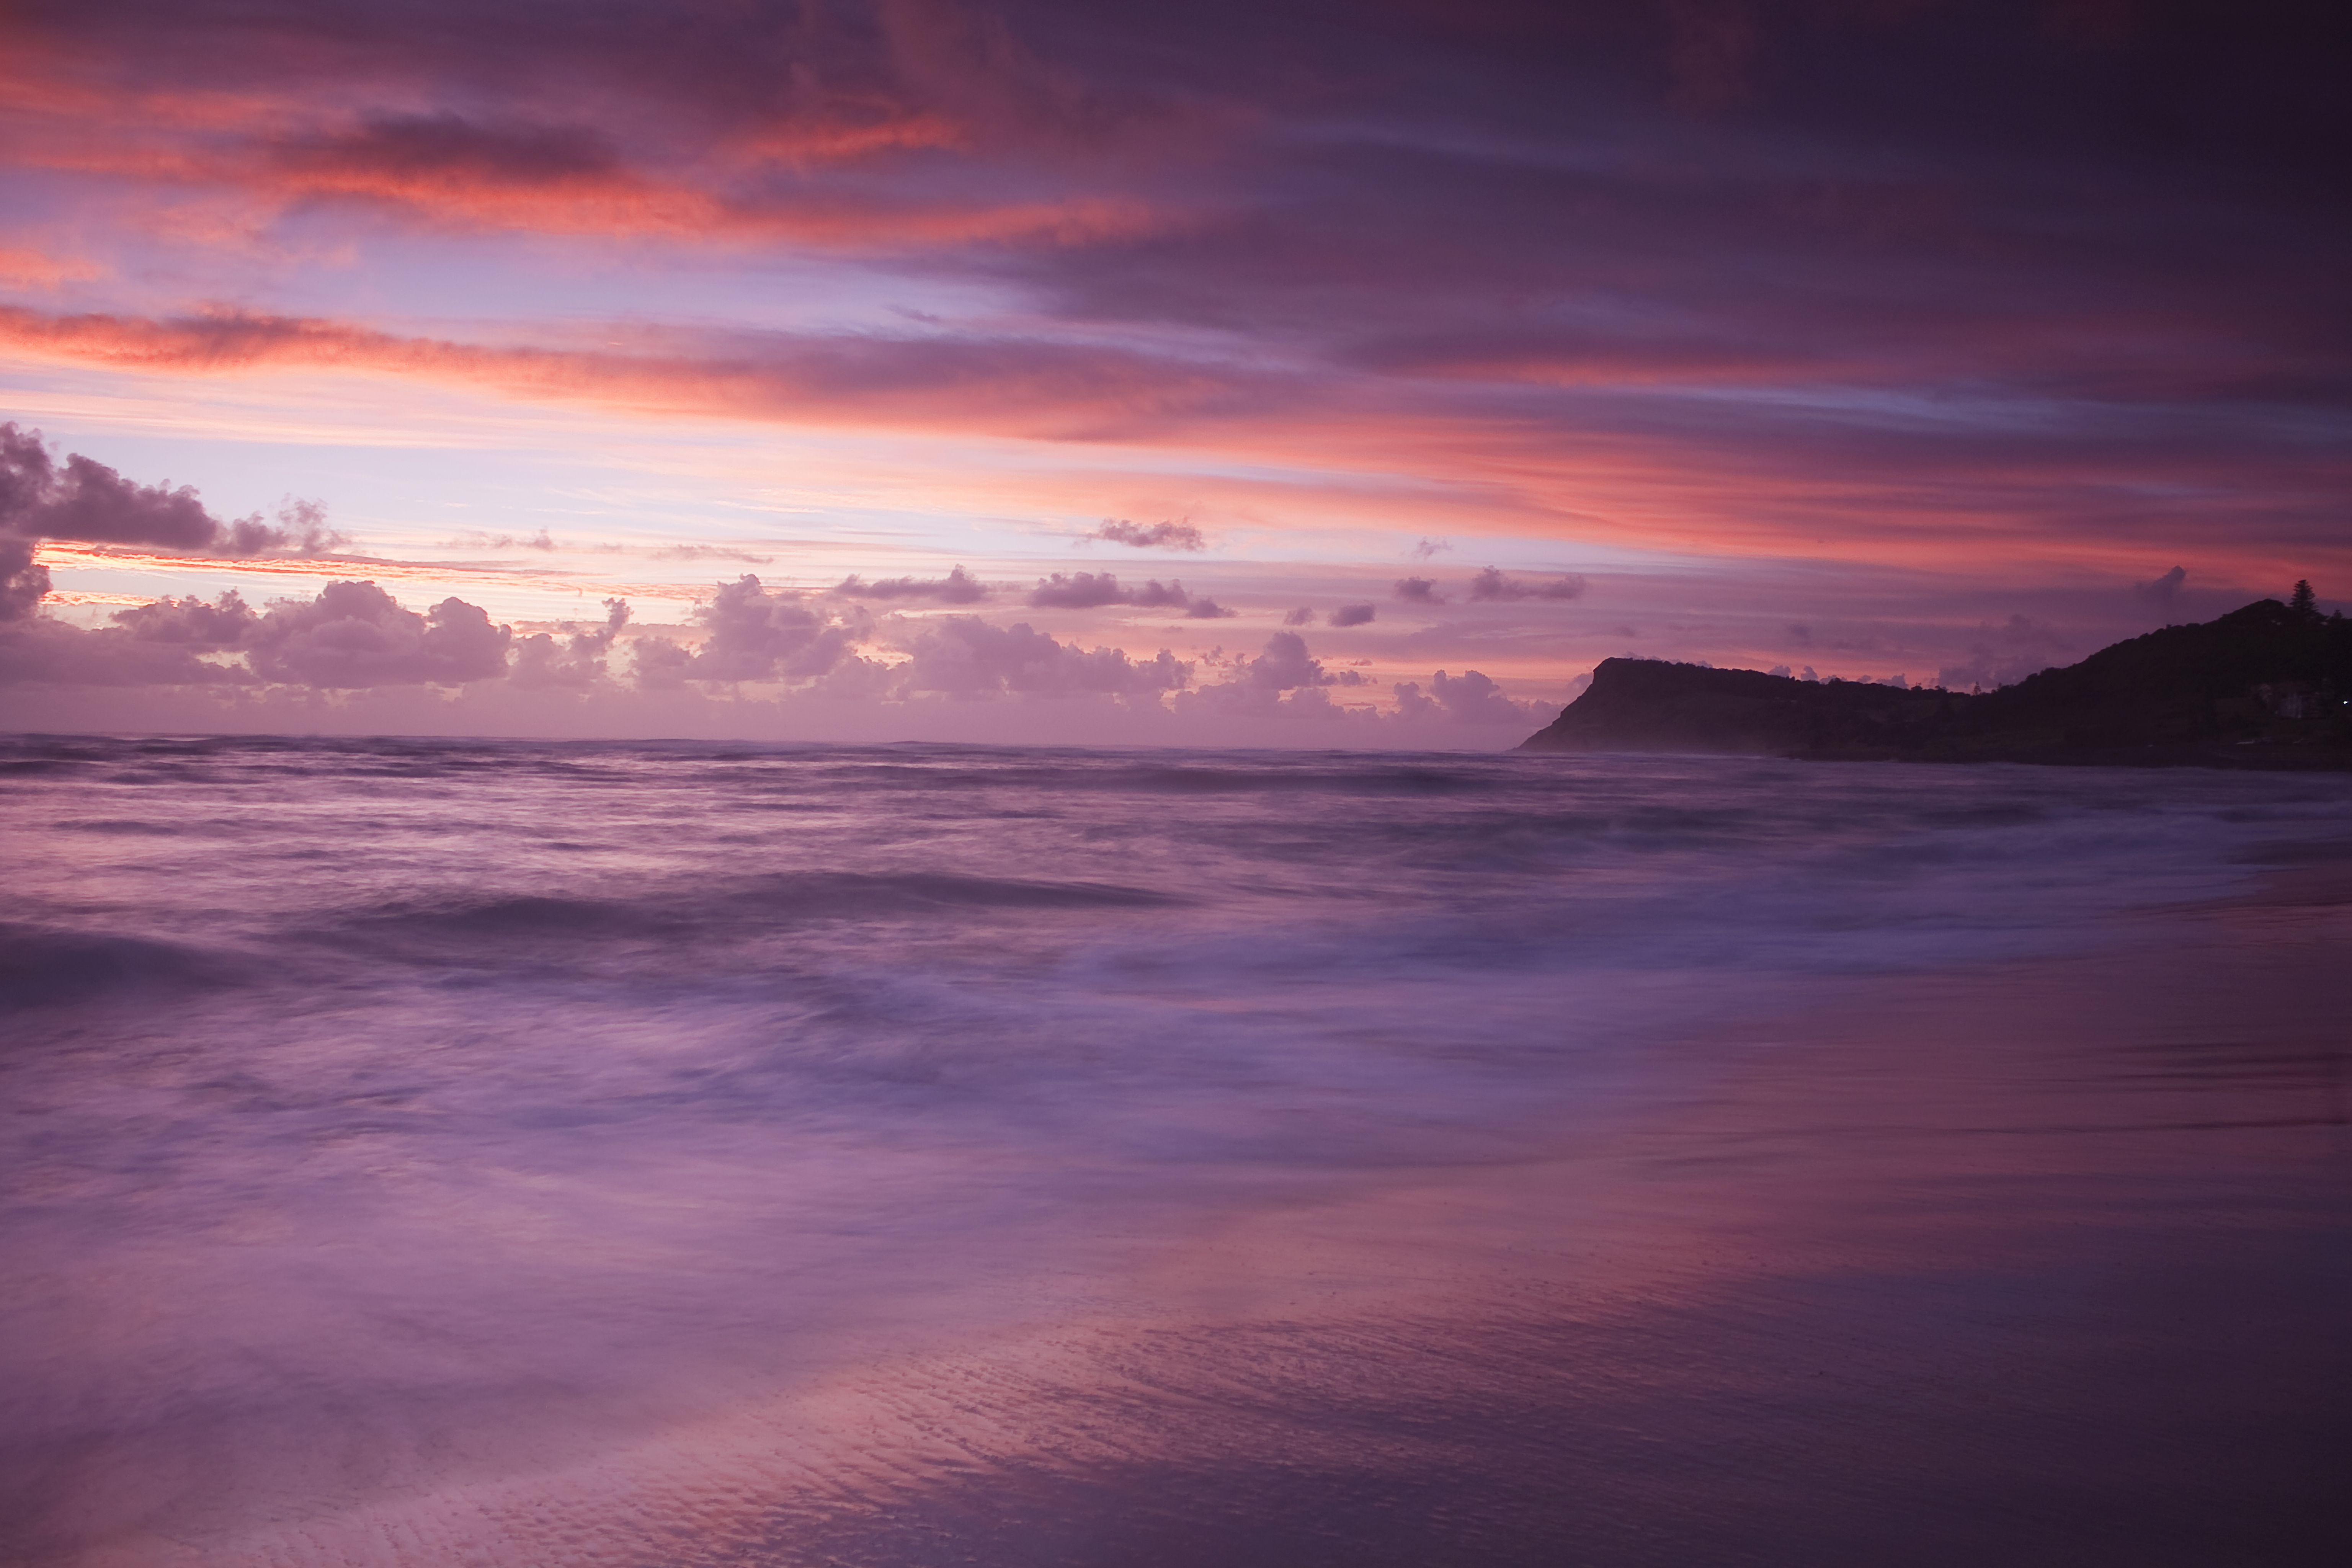 Pink And Purple Sunset Images TheCelebrityPix 6144x4096